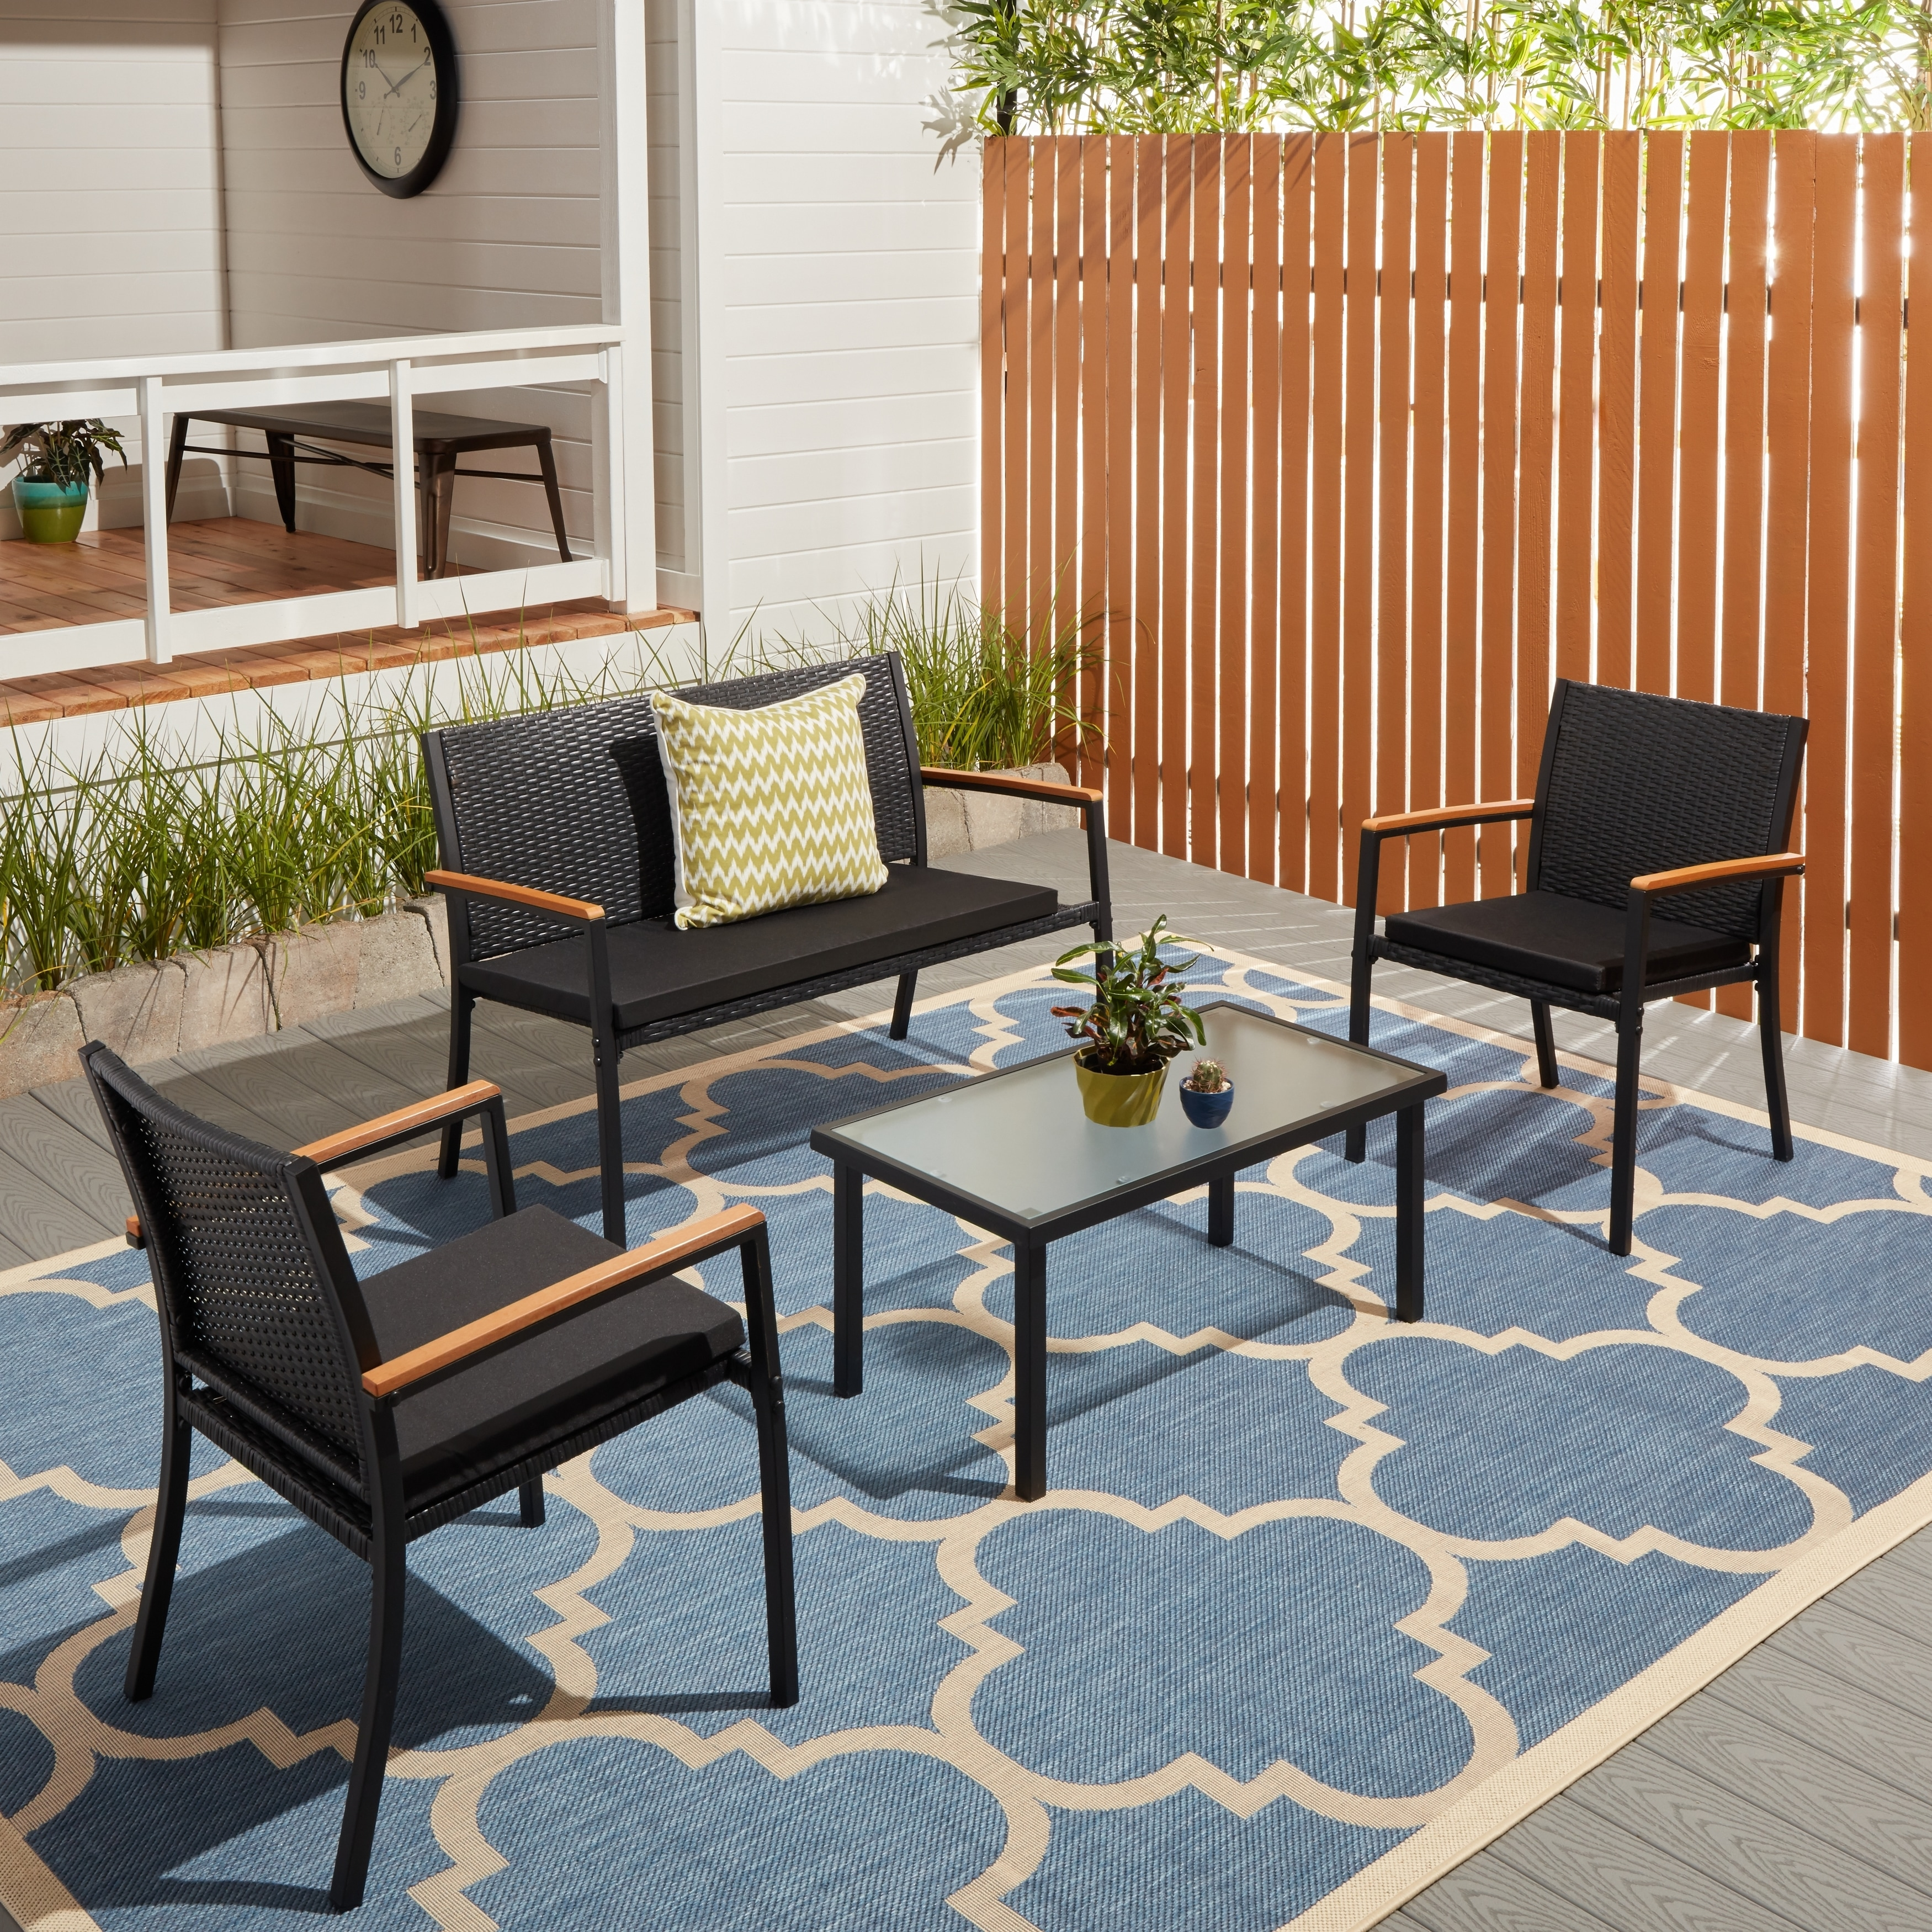 Corvus Lecco 4-piece Black Wicker Outdoor Chat Set - Free Shipping ...